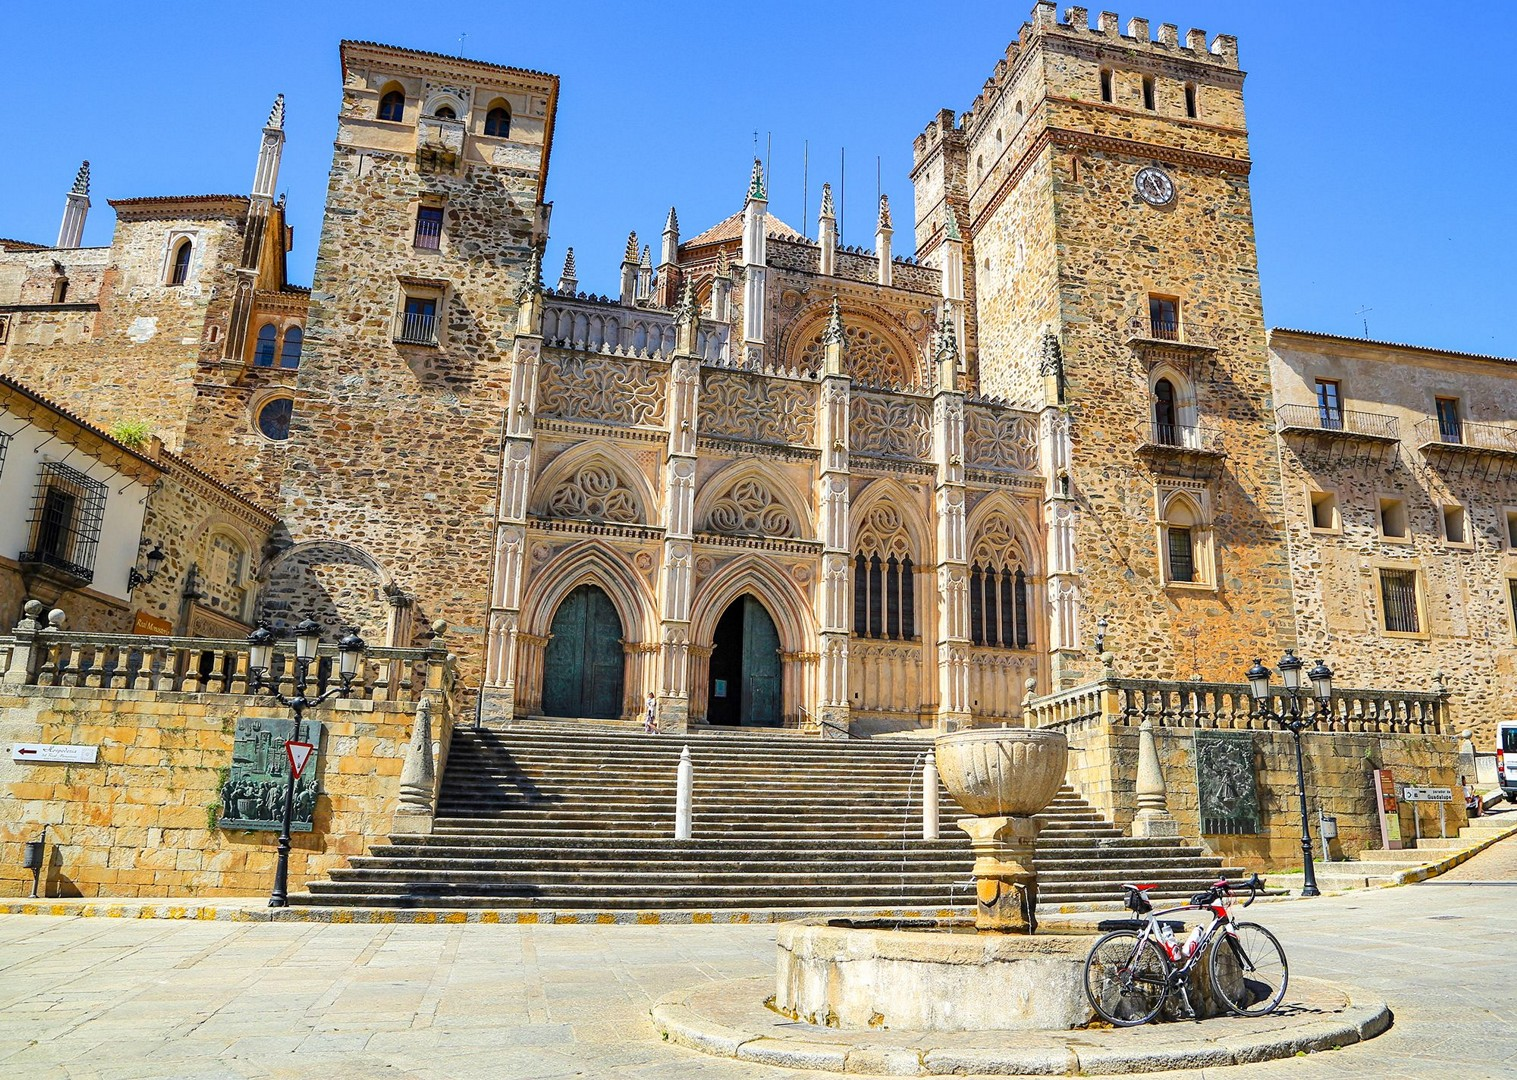 basque-country-to-andalucia-spain-guided-cycling-trips-saddle-skedaddle-holiday.jpg - Spain - Basque Country to Andalucia - North to South (21 Days) - Guided Road Cycling Holiday - Road Cycling